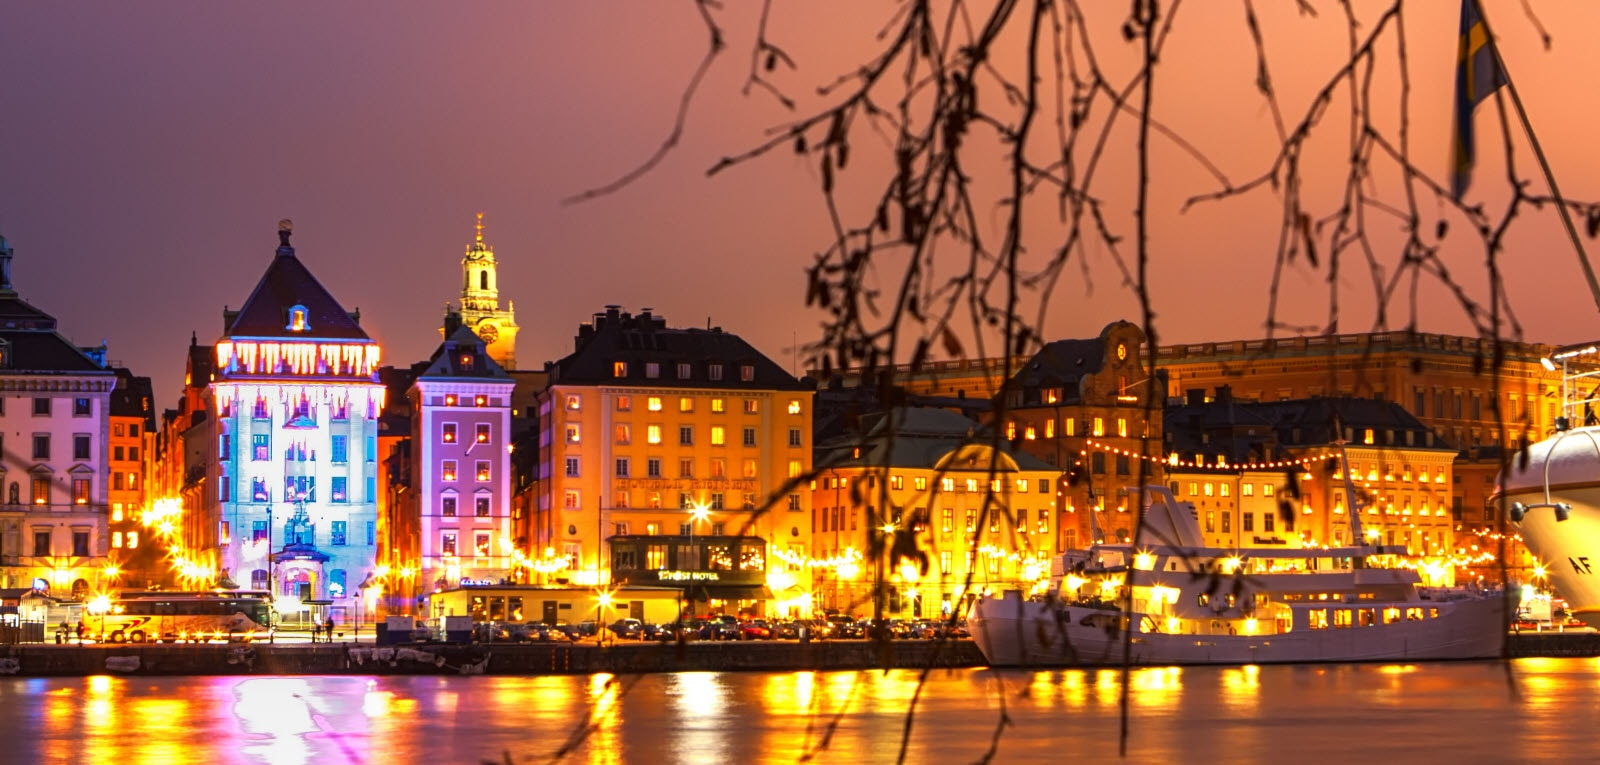 Christmas time in Stockholm Sweden, view over Skeppsbron. Mostphotos.com